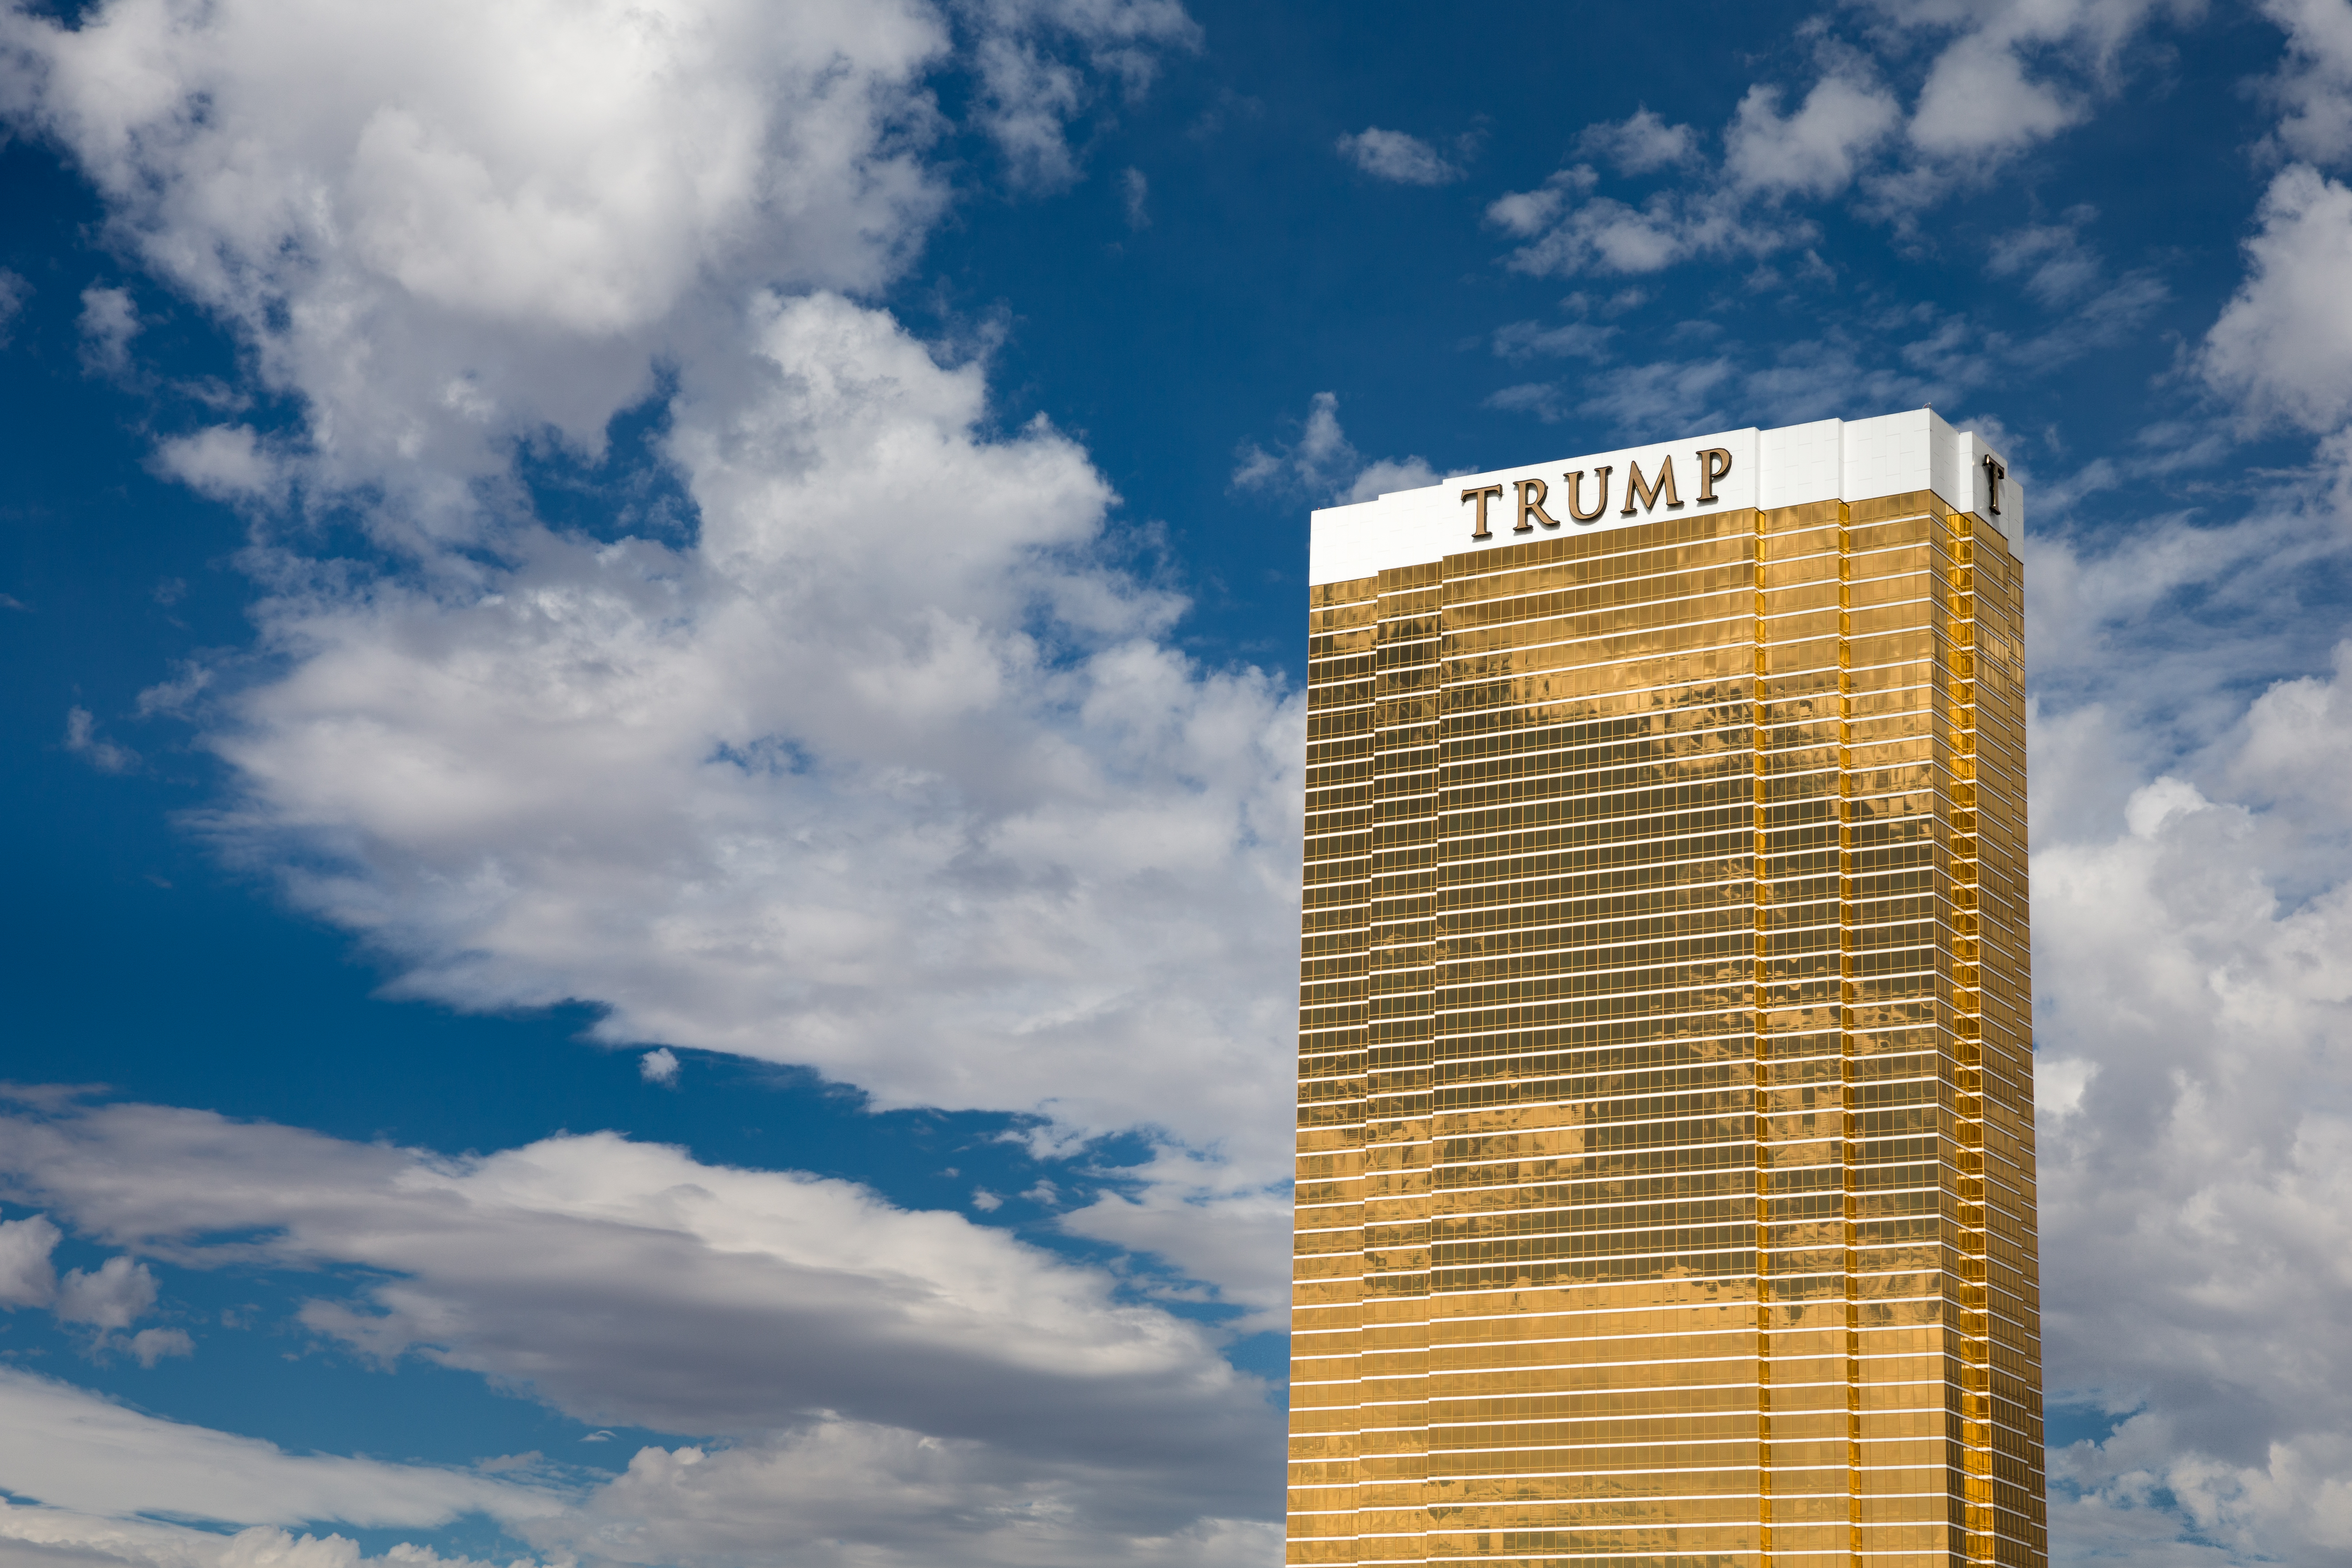 Las Vegas, USA - October 28, 2016:  Trump International Hotel in Las Vegas, NV set against a dramatic blue sky.  Named for US real estate developer and politician Donald Trump, the 64-story luxury property's exterior windows are gilded with 24-carat gold.